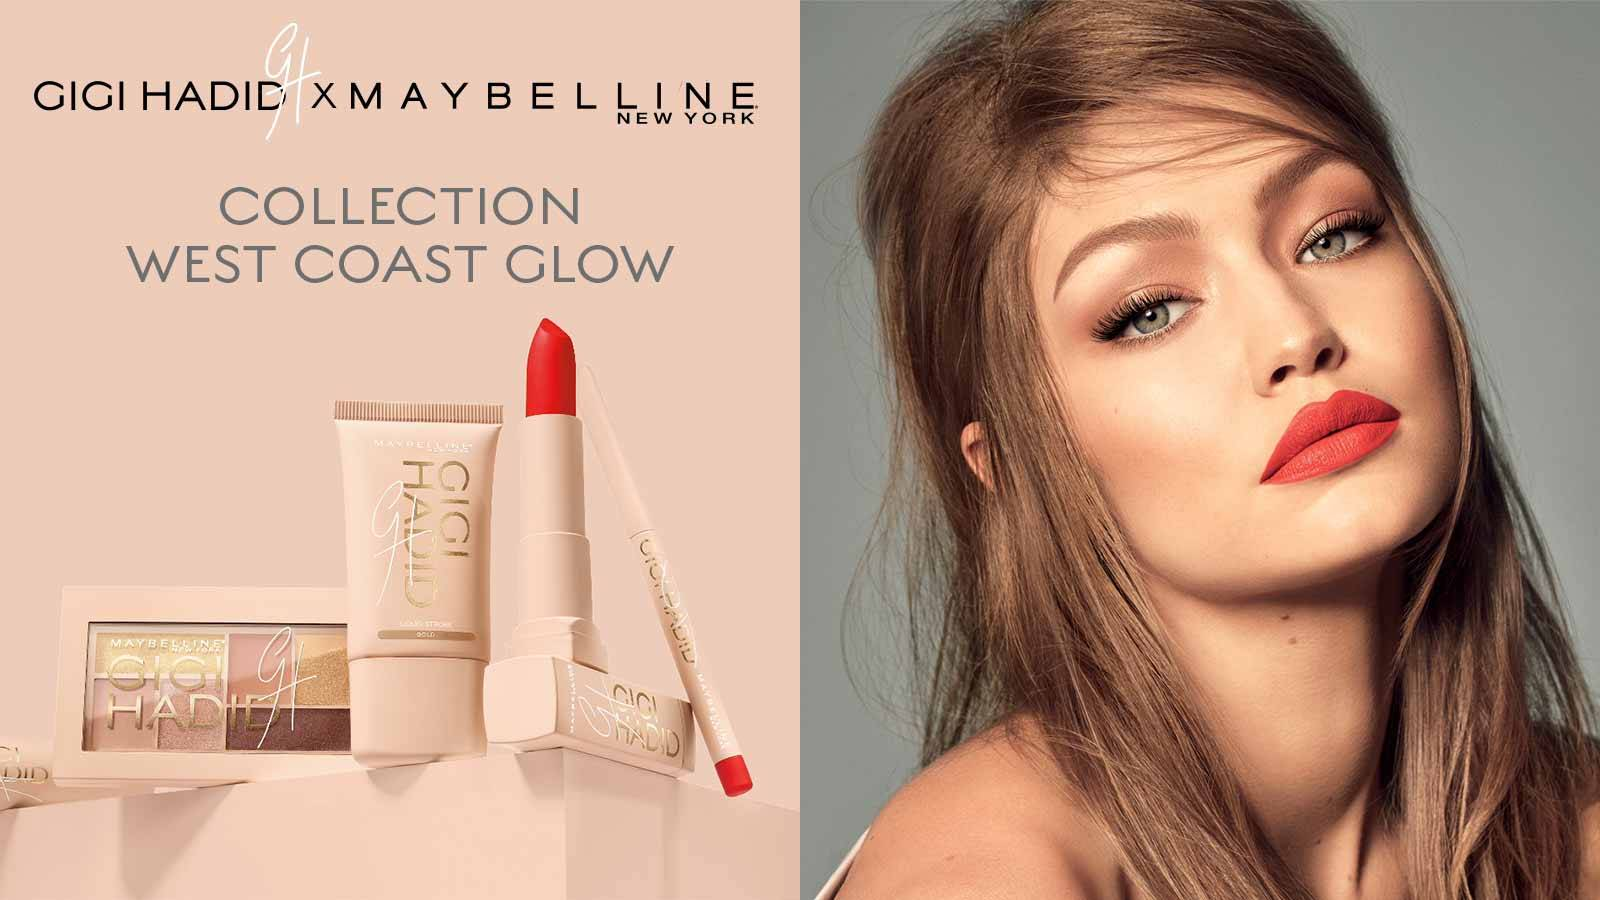 maybelline-collection-maquillage-gigi-hadid-tutoriel-west-coast-glow-video-16x9